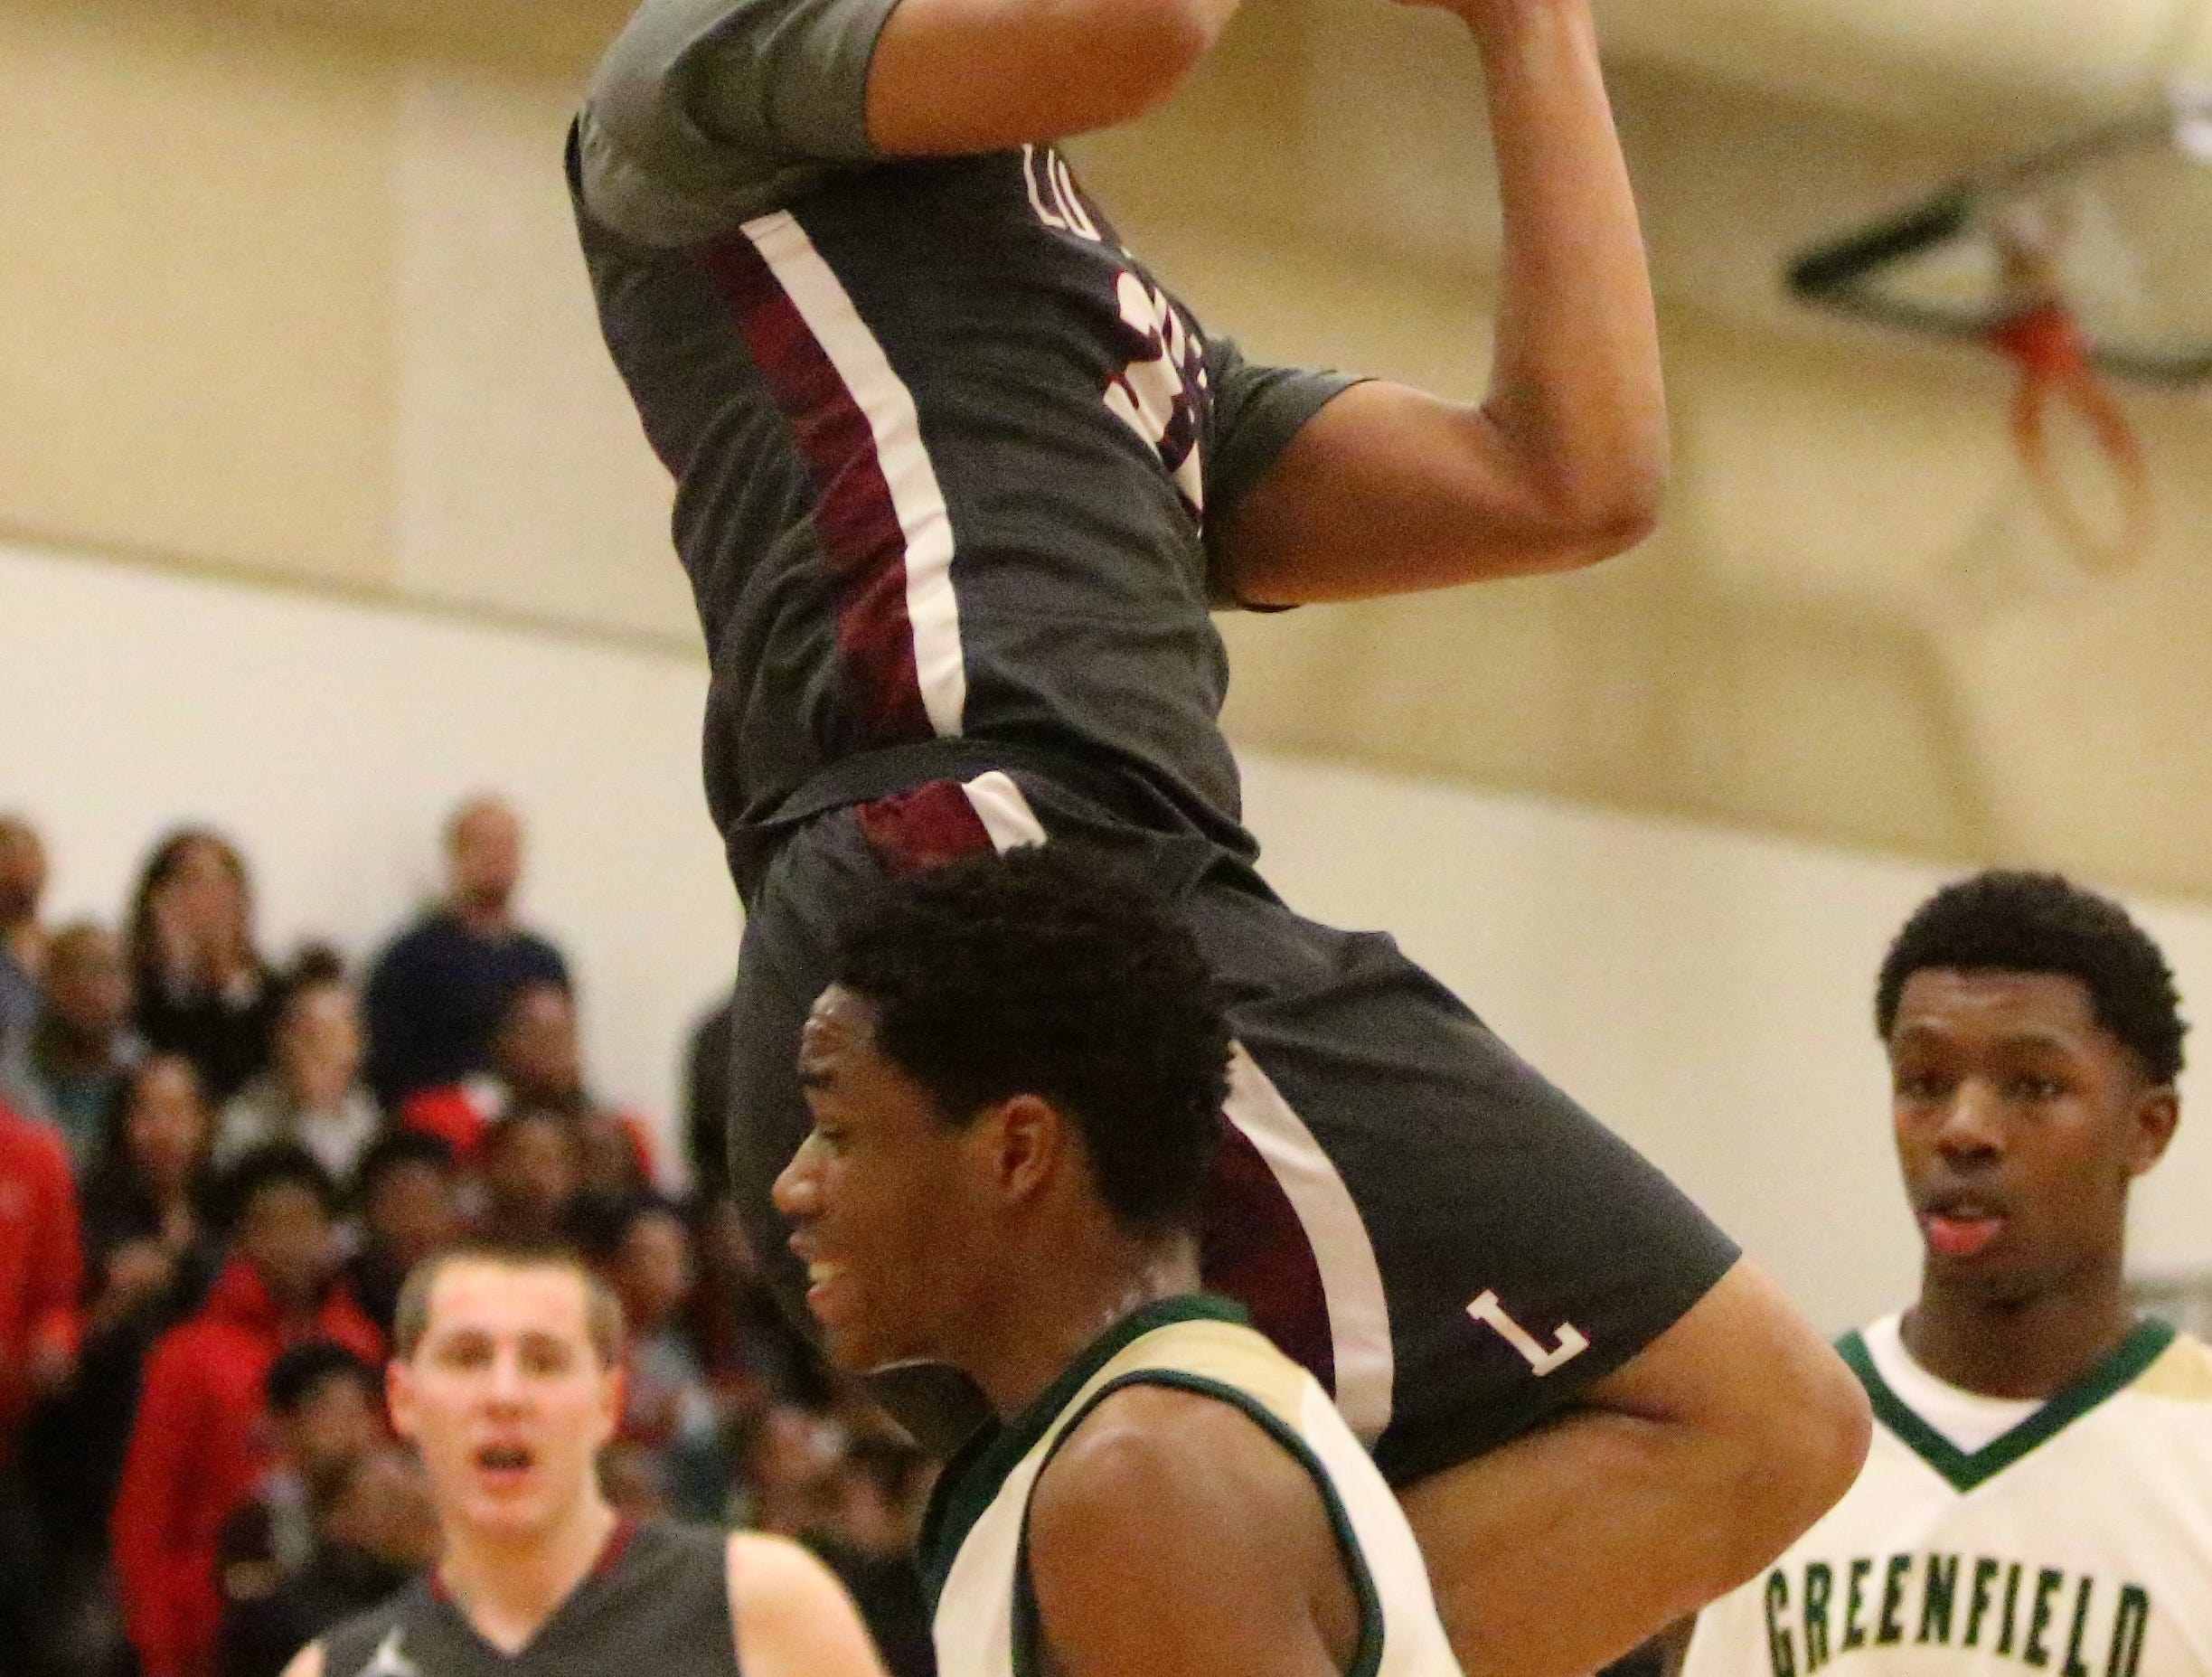 Milwaukee Lutheran forward Jourdan Weddle rises up for a layup against Greenfield on Feb. 8, 2019.